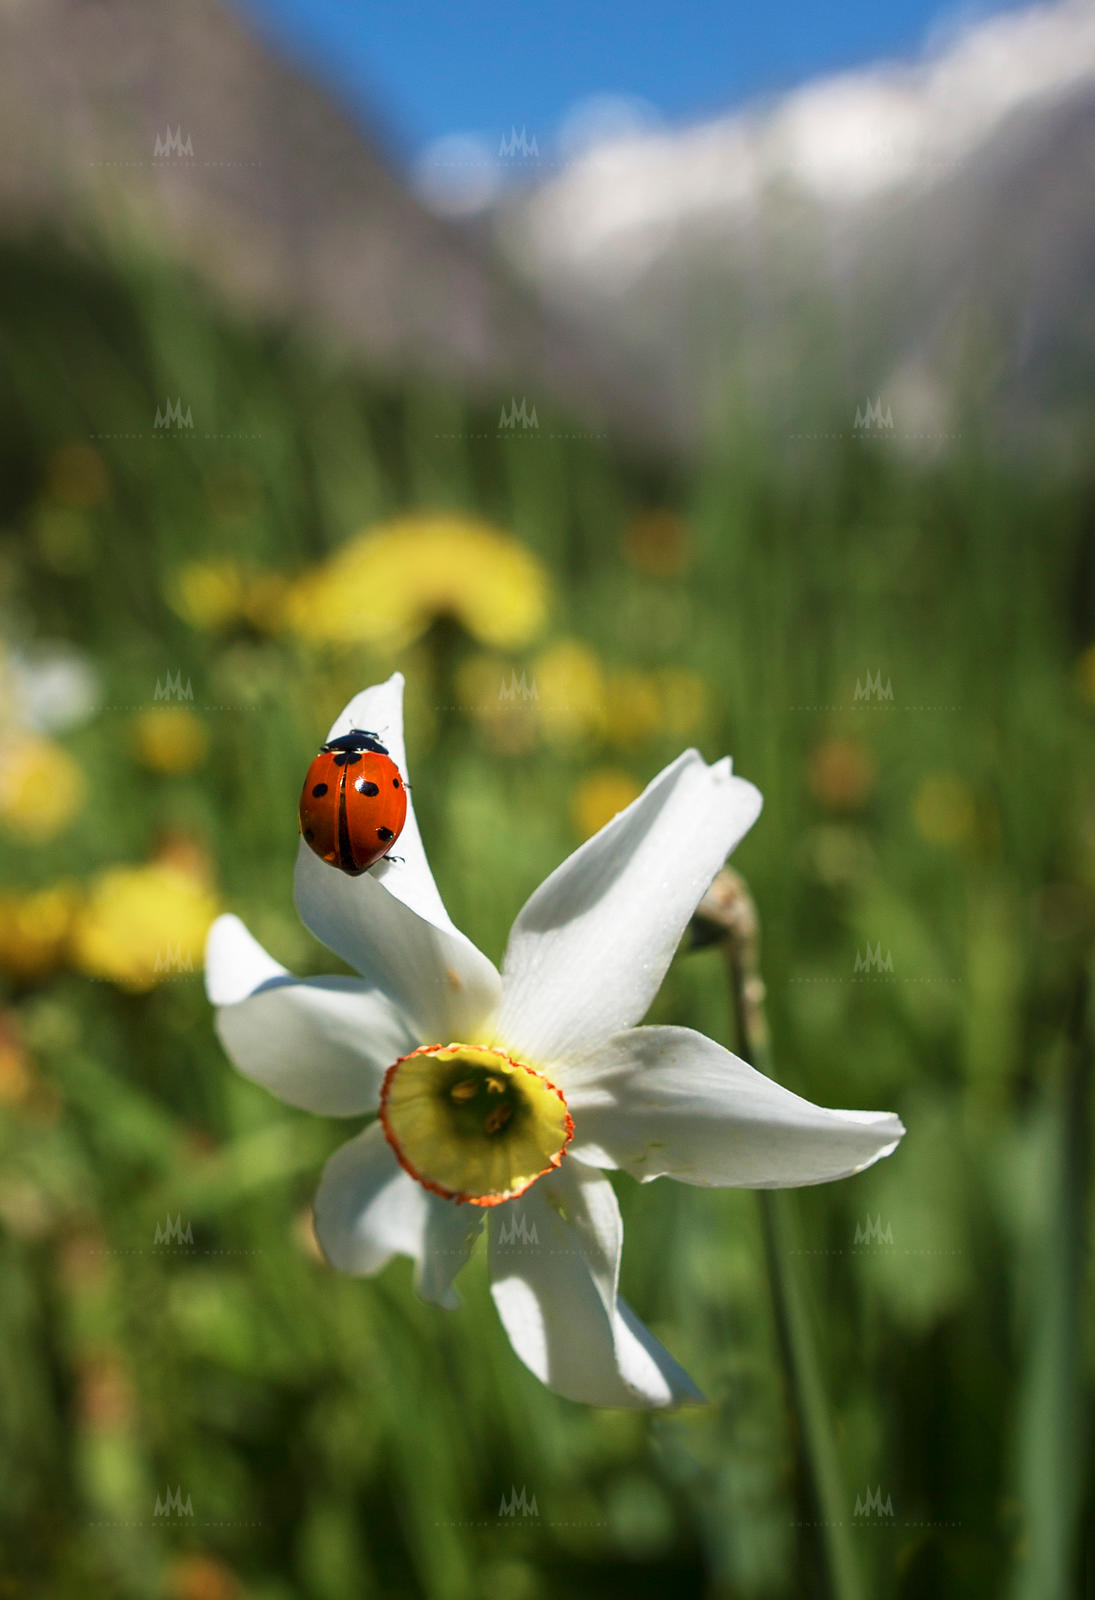 MMM_-_2020_-_Ailefroide_-_Coccinelle_Narcisse_copie